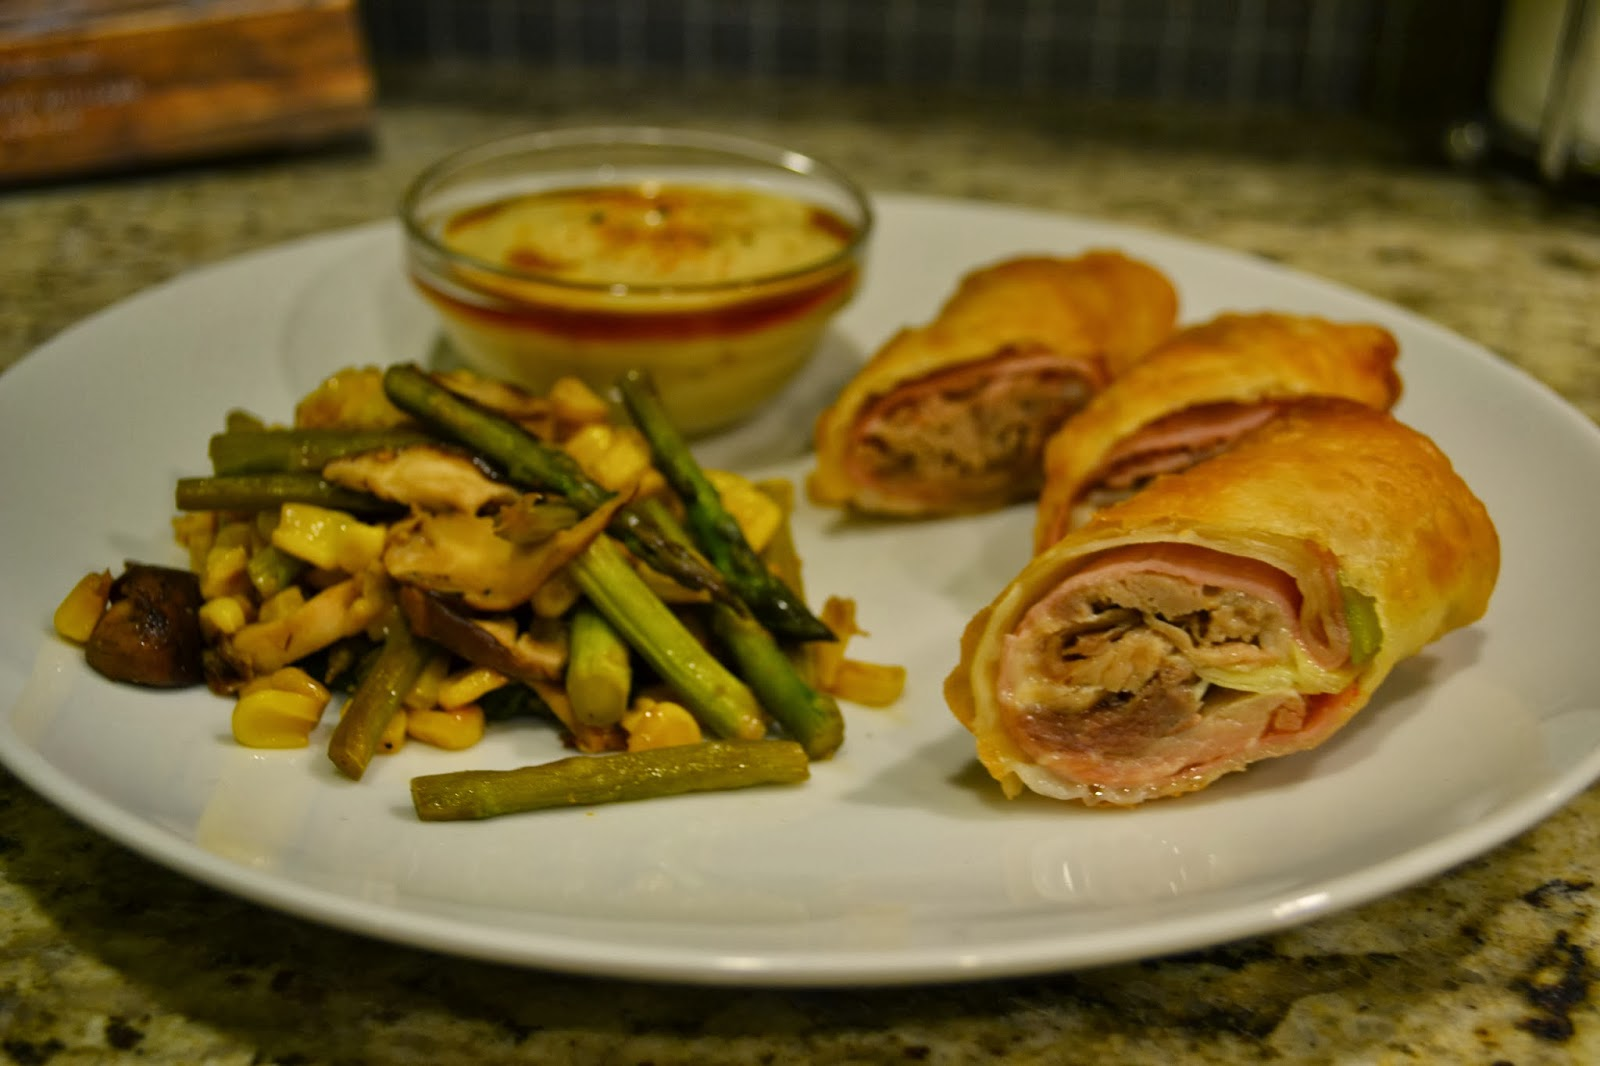 Monte cristo egg rolls w wasabi mojo add avocado this recipe is slightly adapted from an episode of diners drive ins and dives from the food network i saw these on the funky finds in flavortown forumfinder Image collections